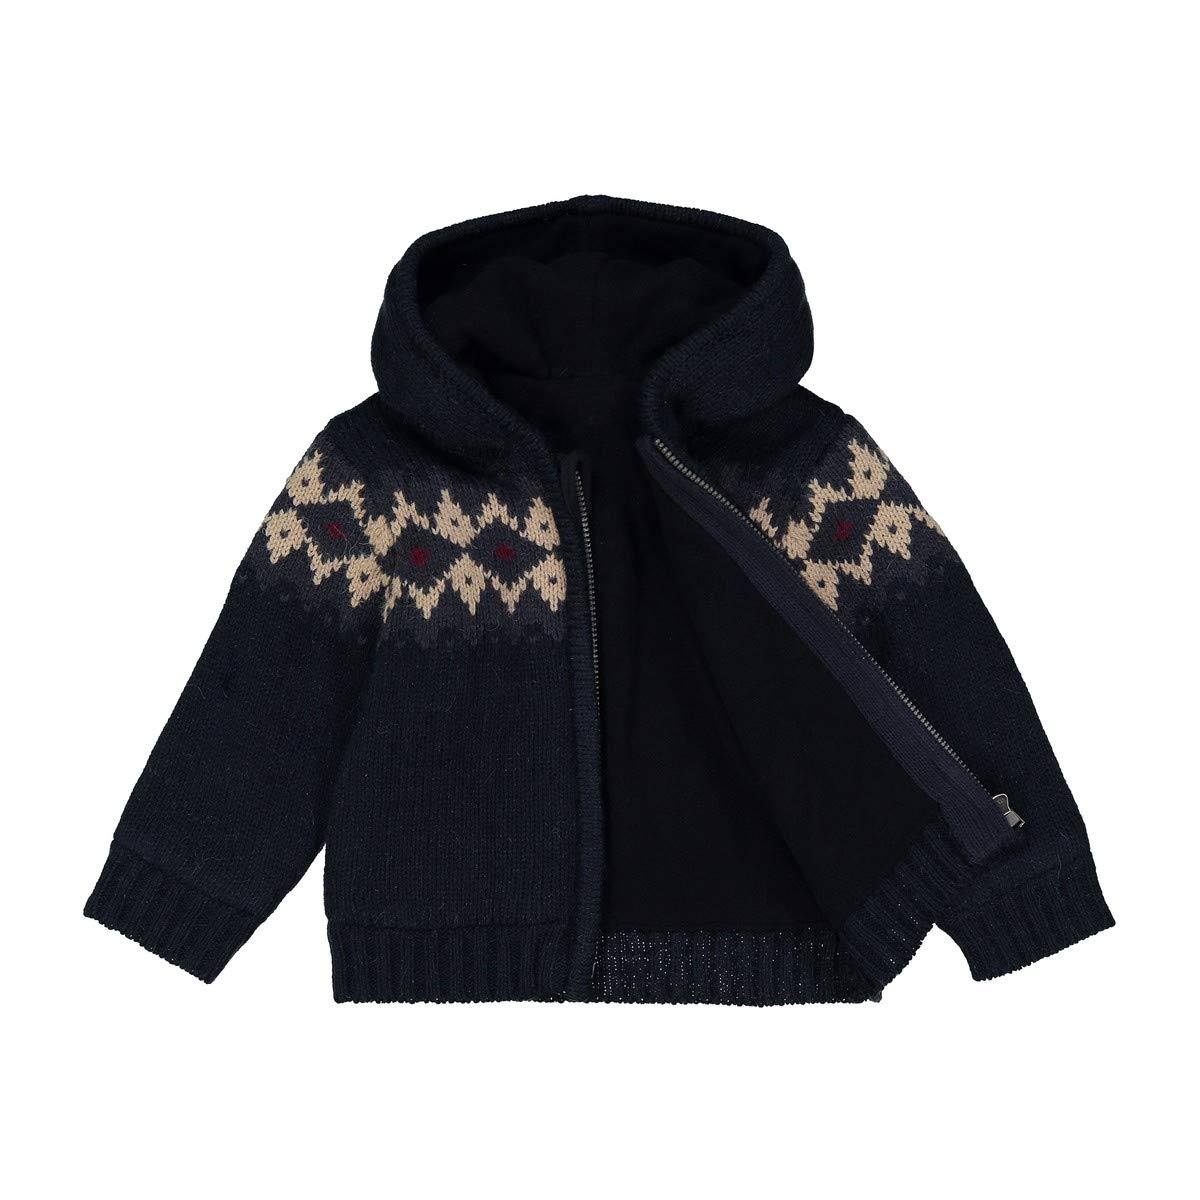 La Redoute Collections Big Boys Jacquard Hooded Cardigan 1 Month-3 Years